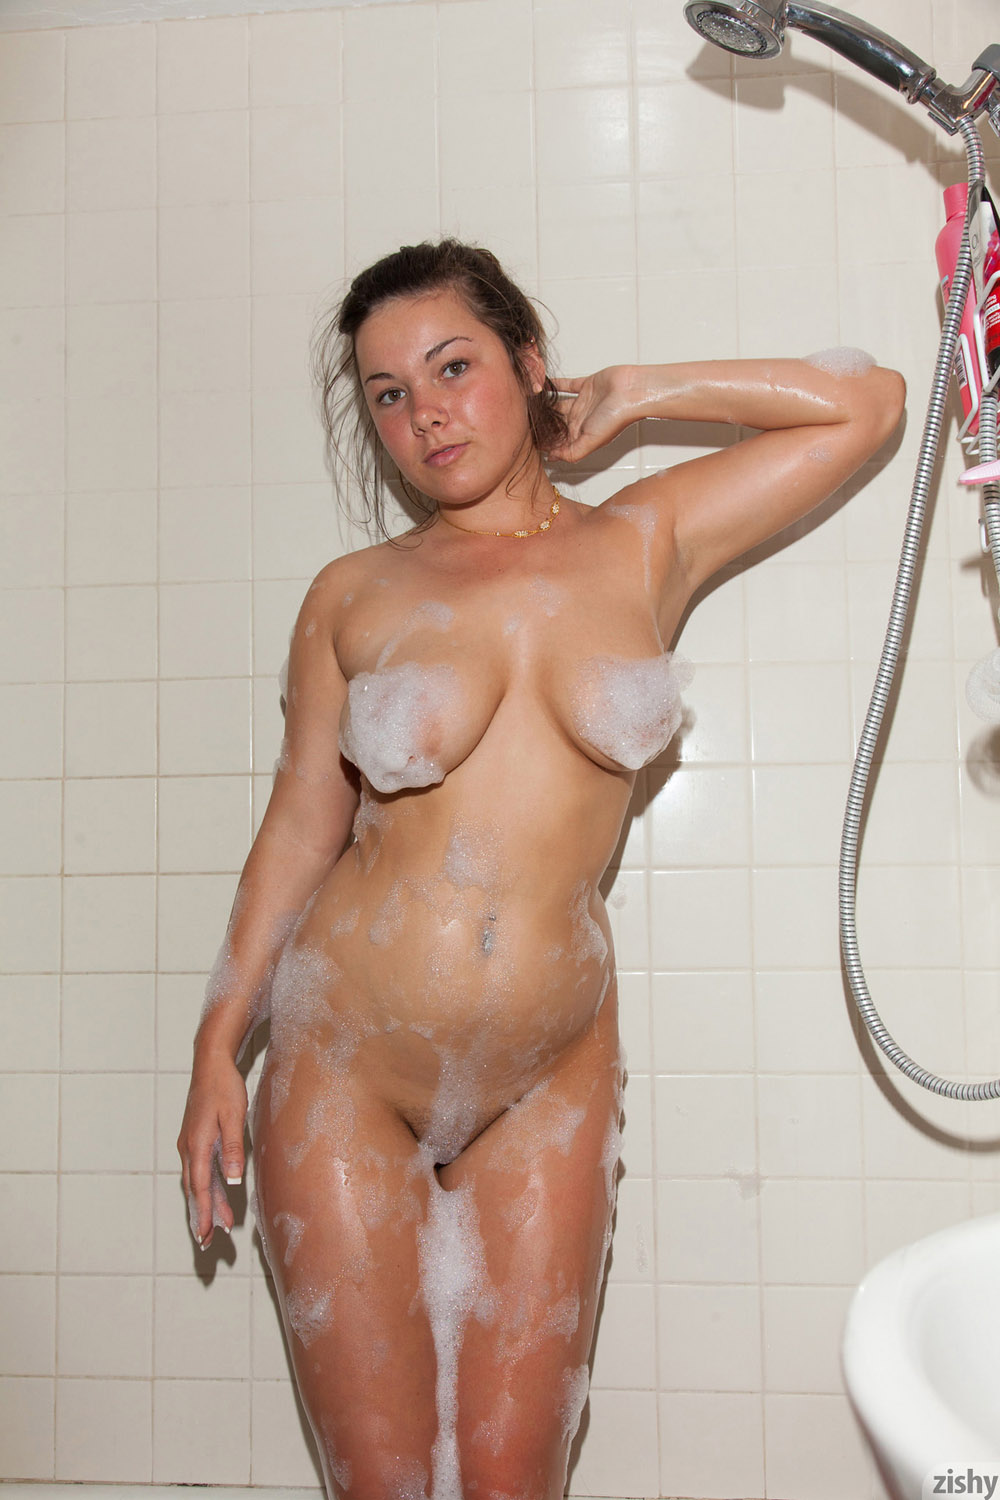 Are not Naked in shower topic